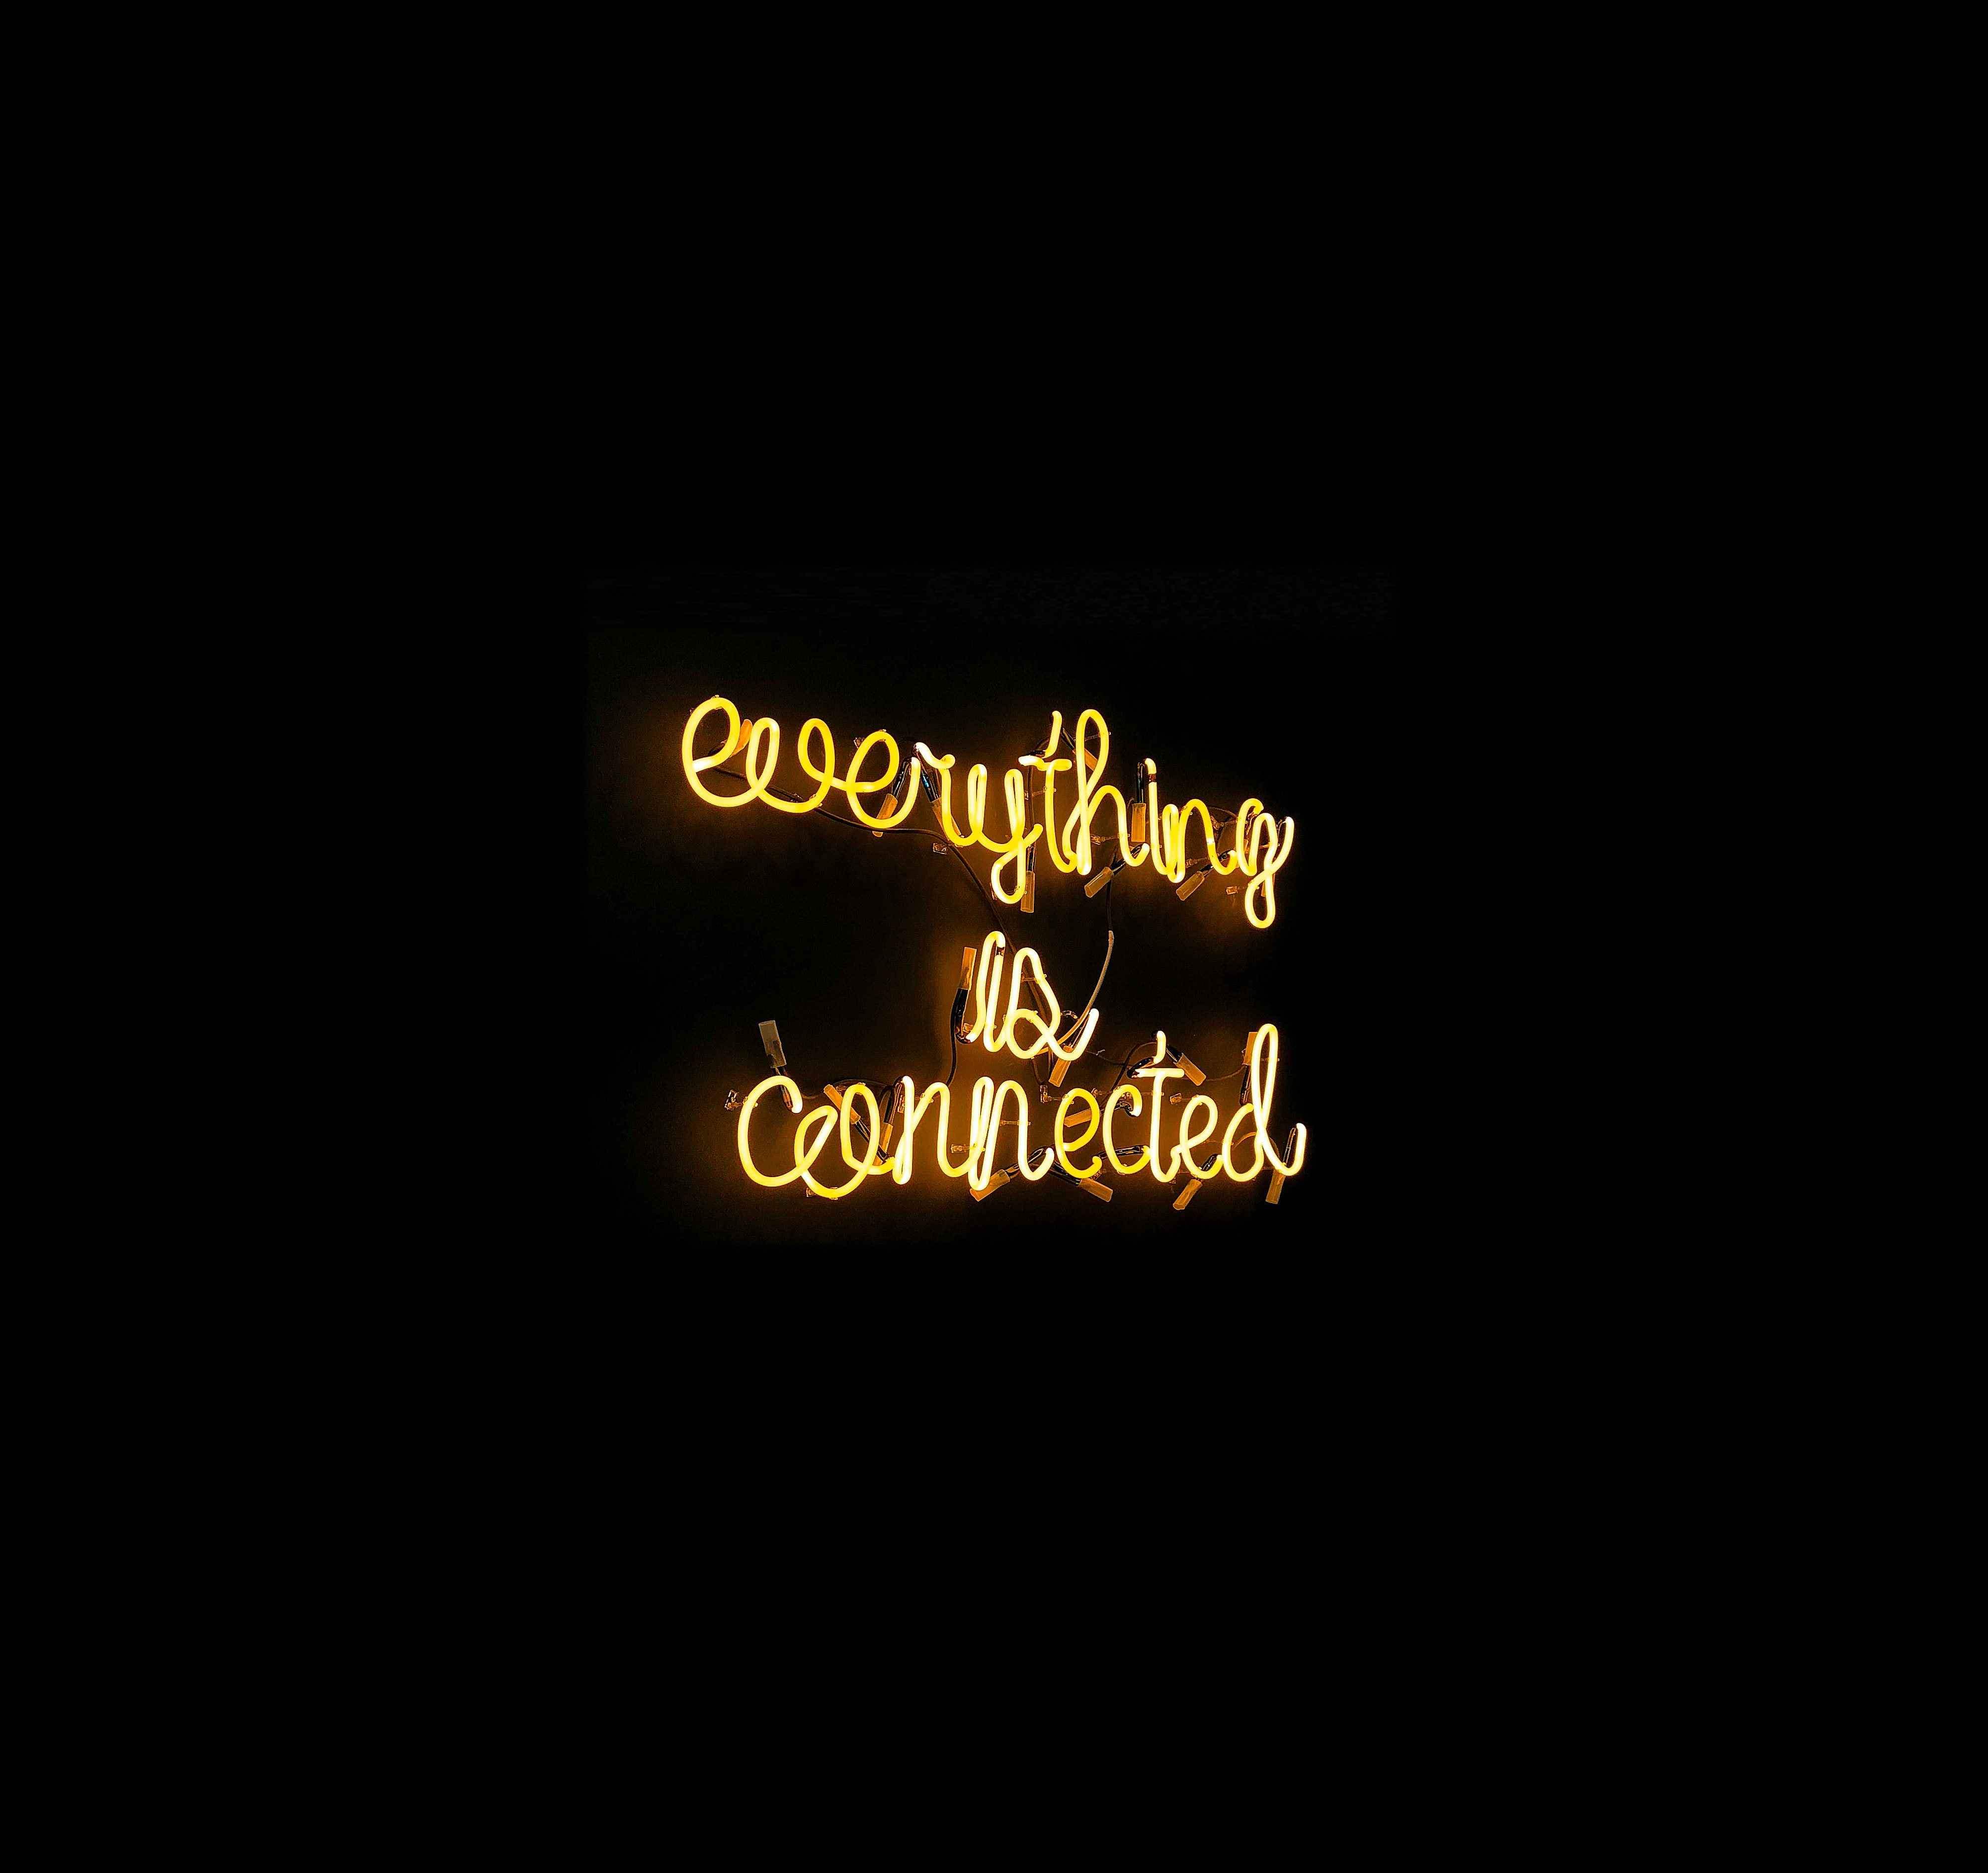 Everything Is Connected 4k Wallpaper Neon Sign Black Background Yellow Black Dark 386